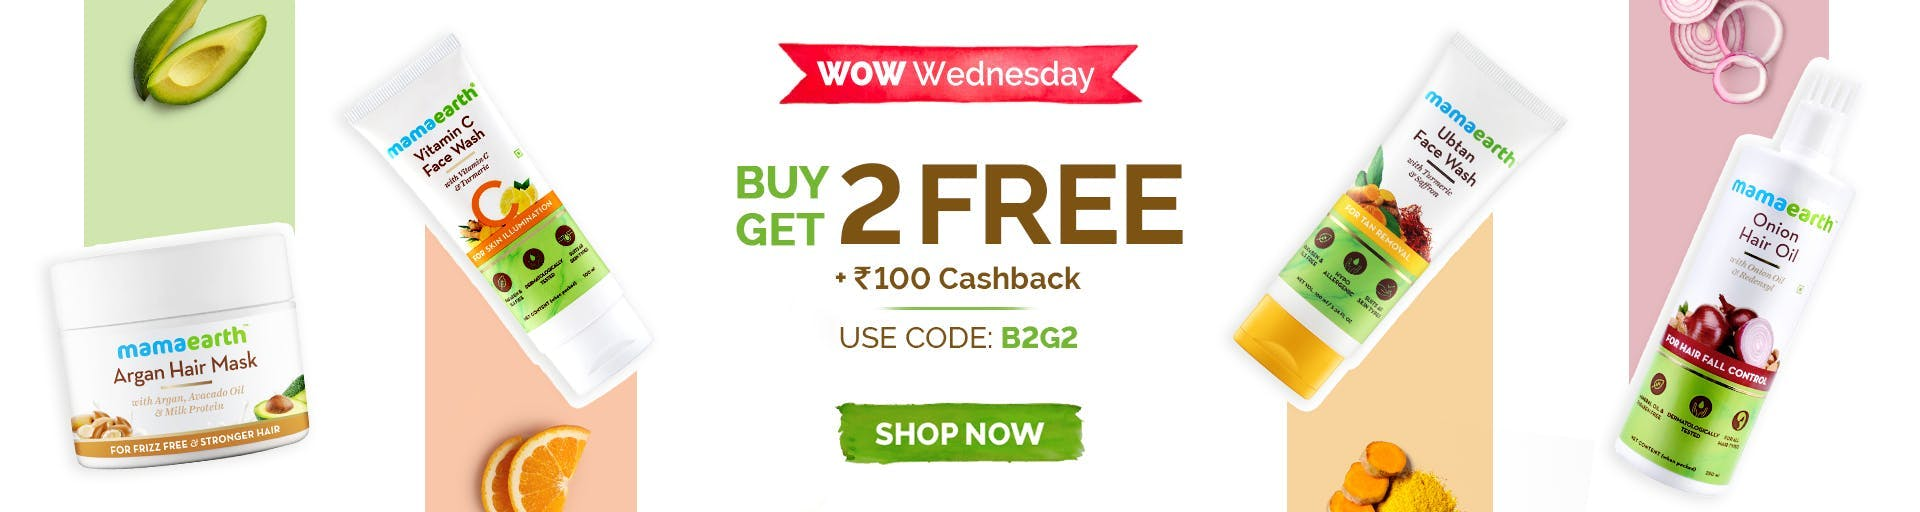 mamaearth.in - Get Buy 2 Get 2 Free + ₹100 cash-back on Select Body Care Range